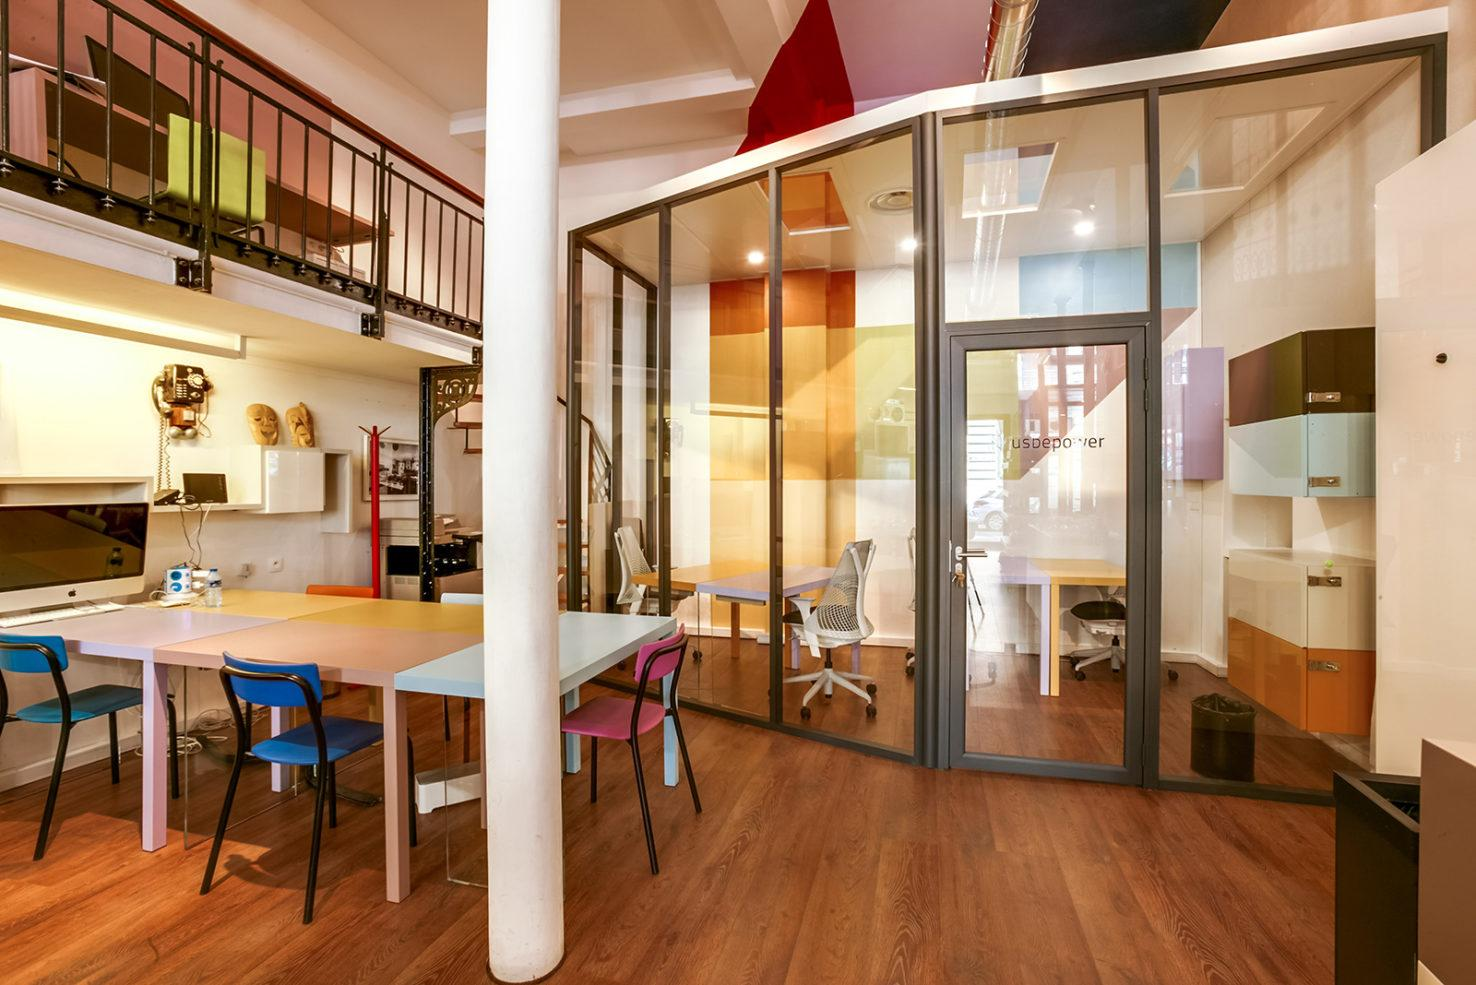 Patchwork Co-Working Office Space in Paris